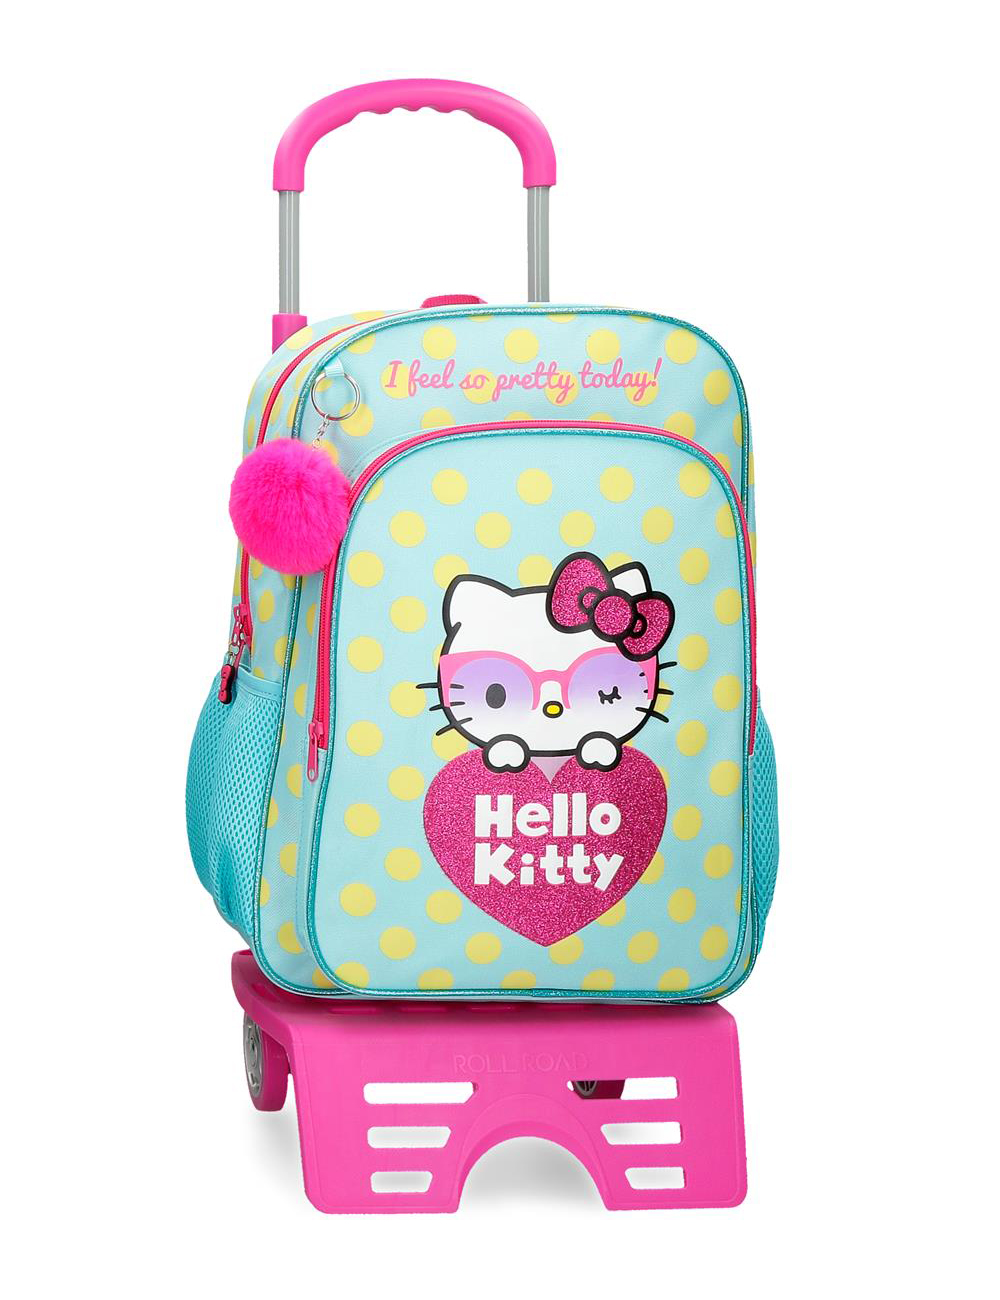 42623t1 Mochila 40cm con Ruedas Hello Kitty Pretty Glasses